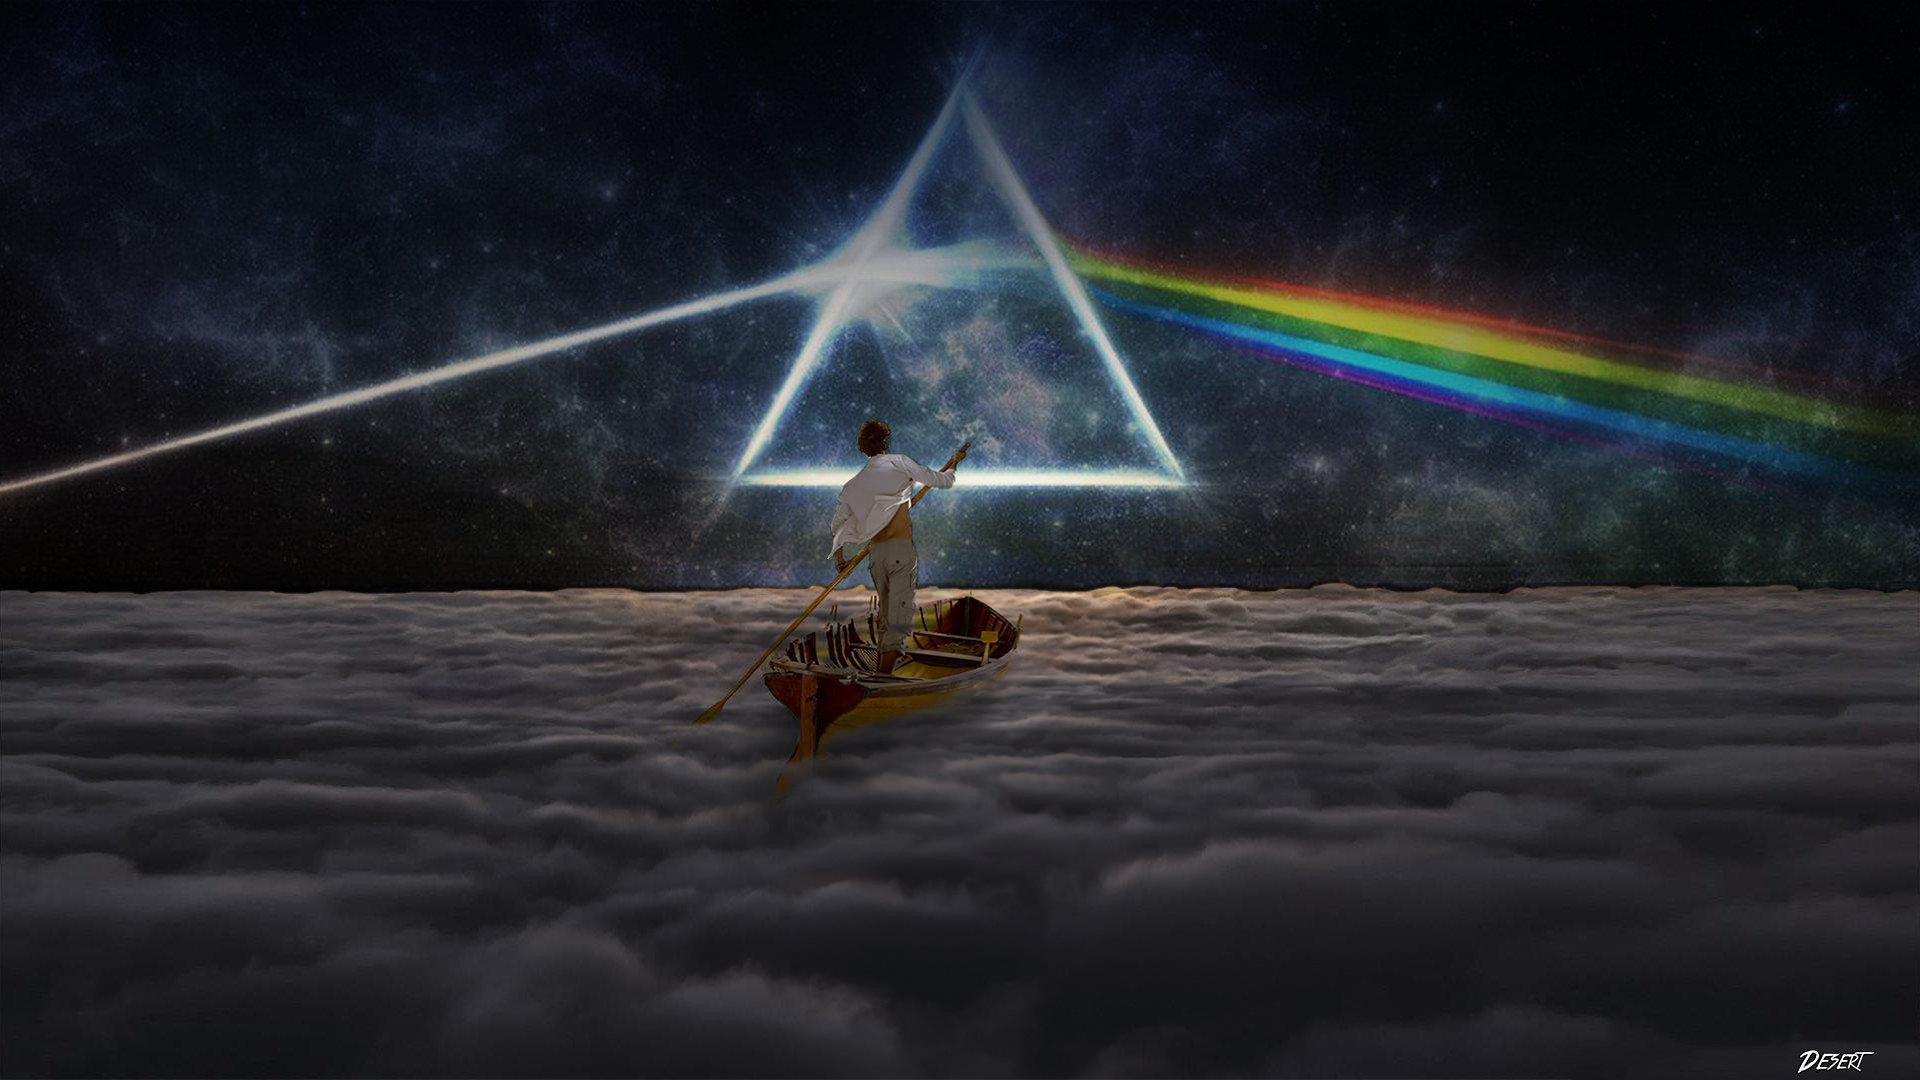 Pink floyd album covers wallpaper 68 images - Pink floyd images high resolution ...